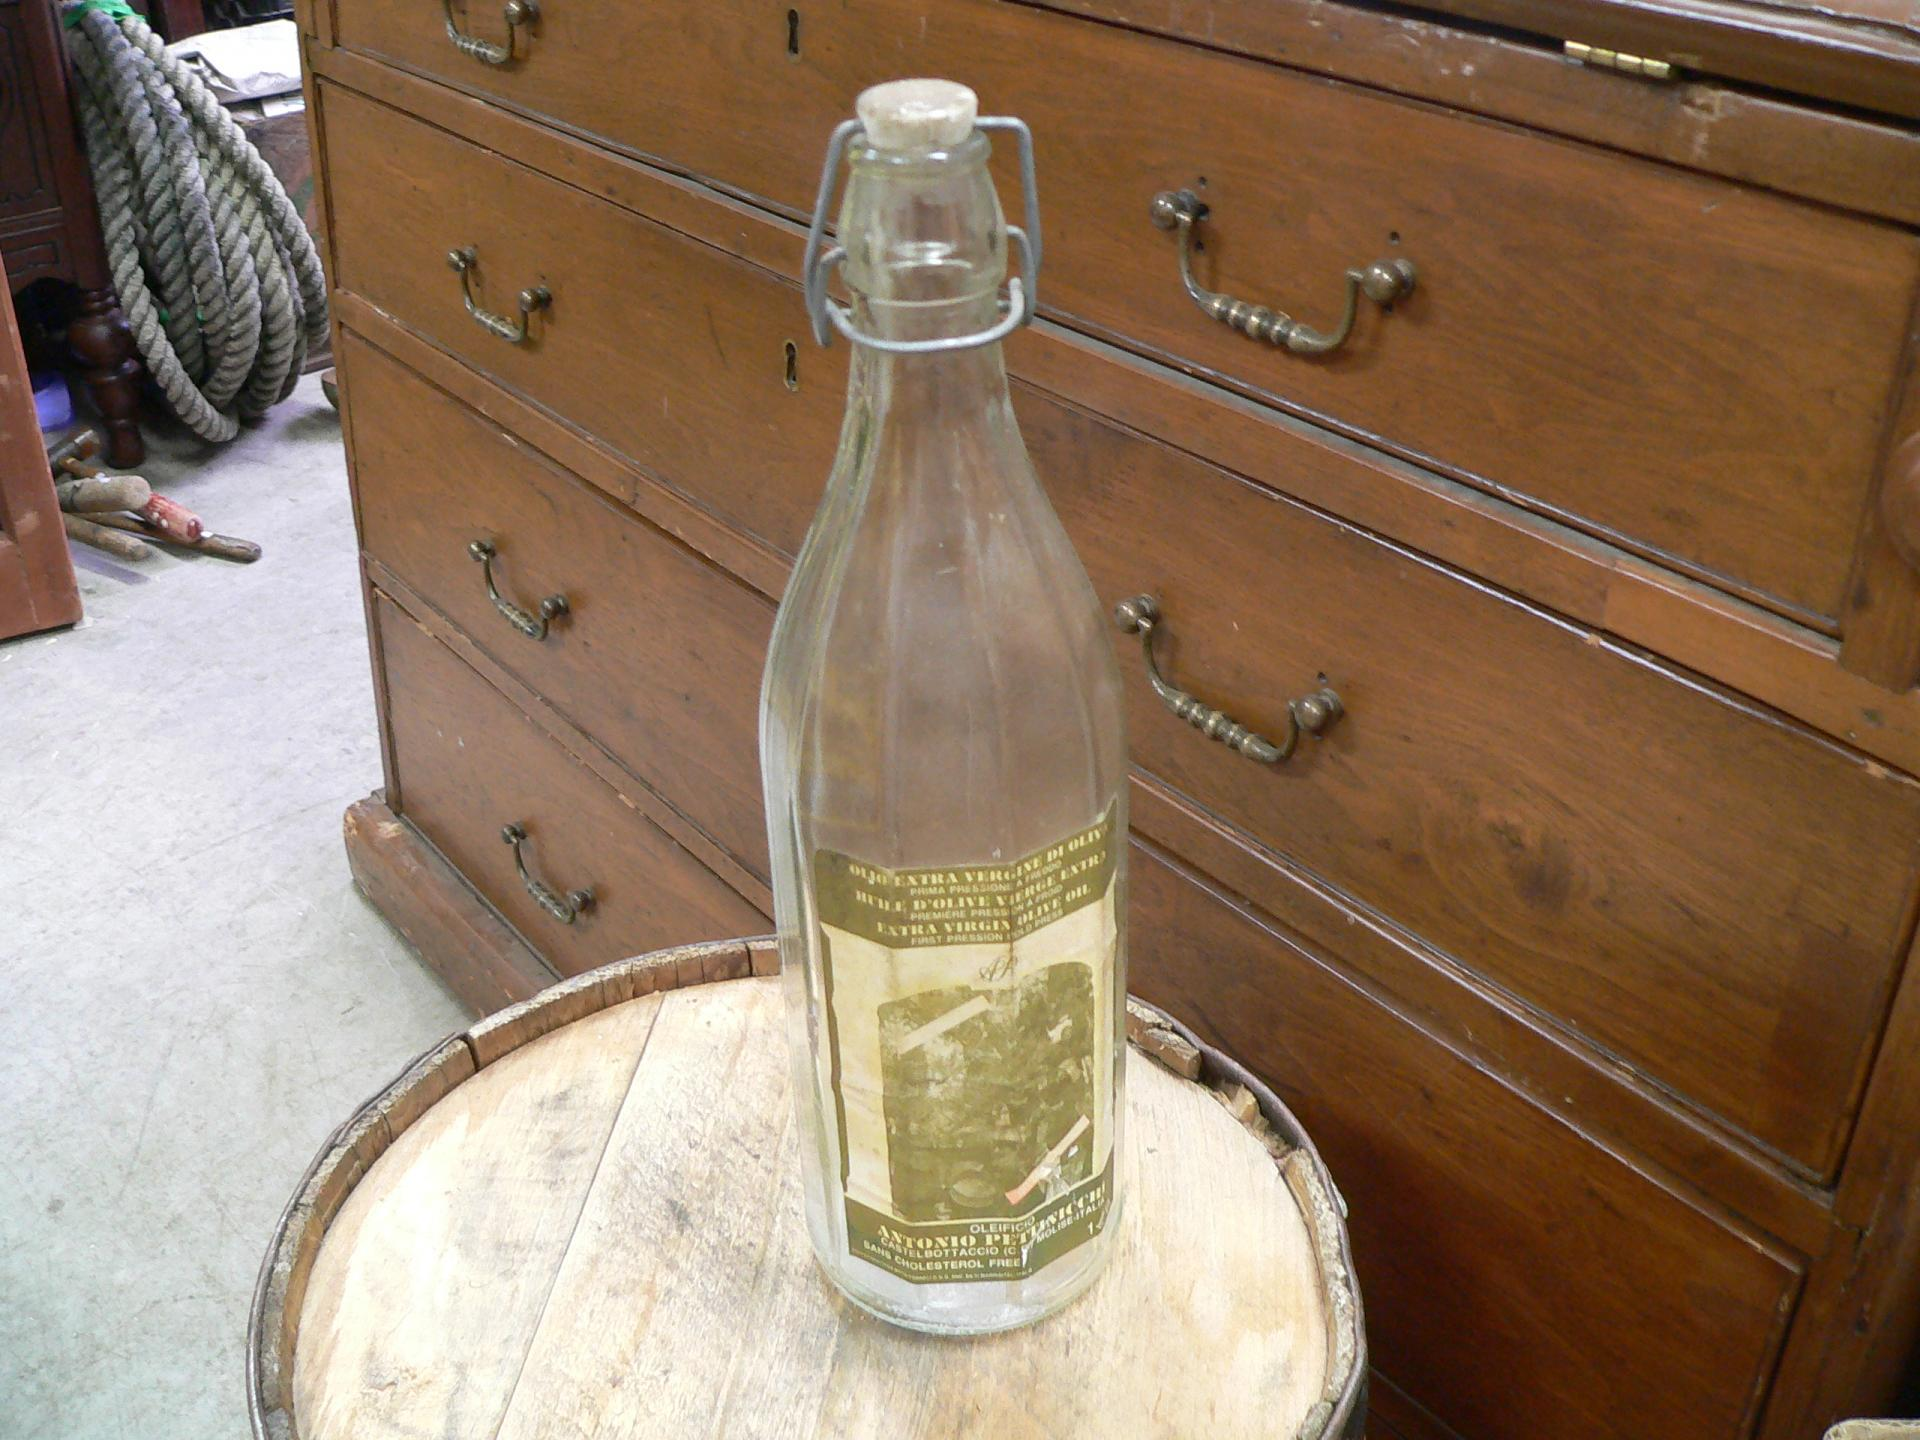 Bouteille huile d'olive # 4687.3